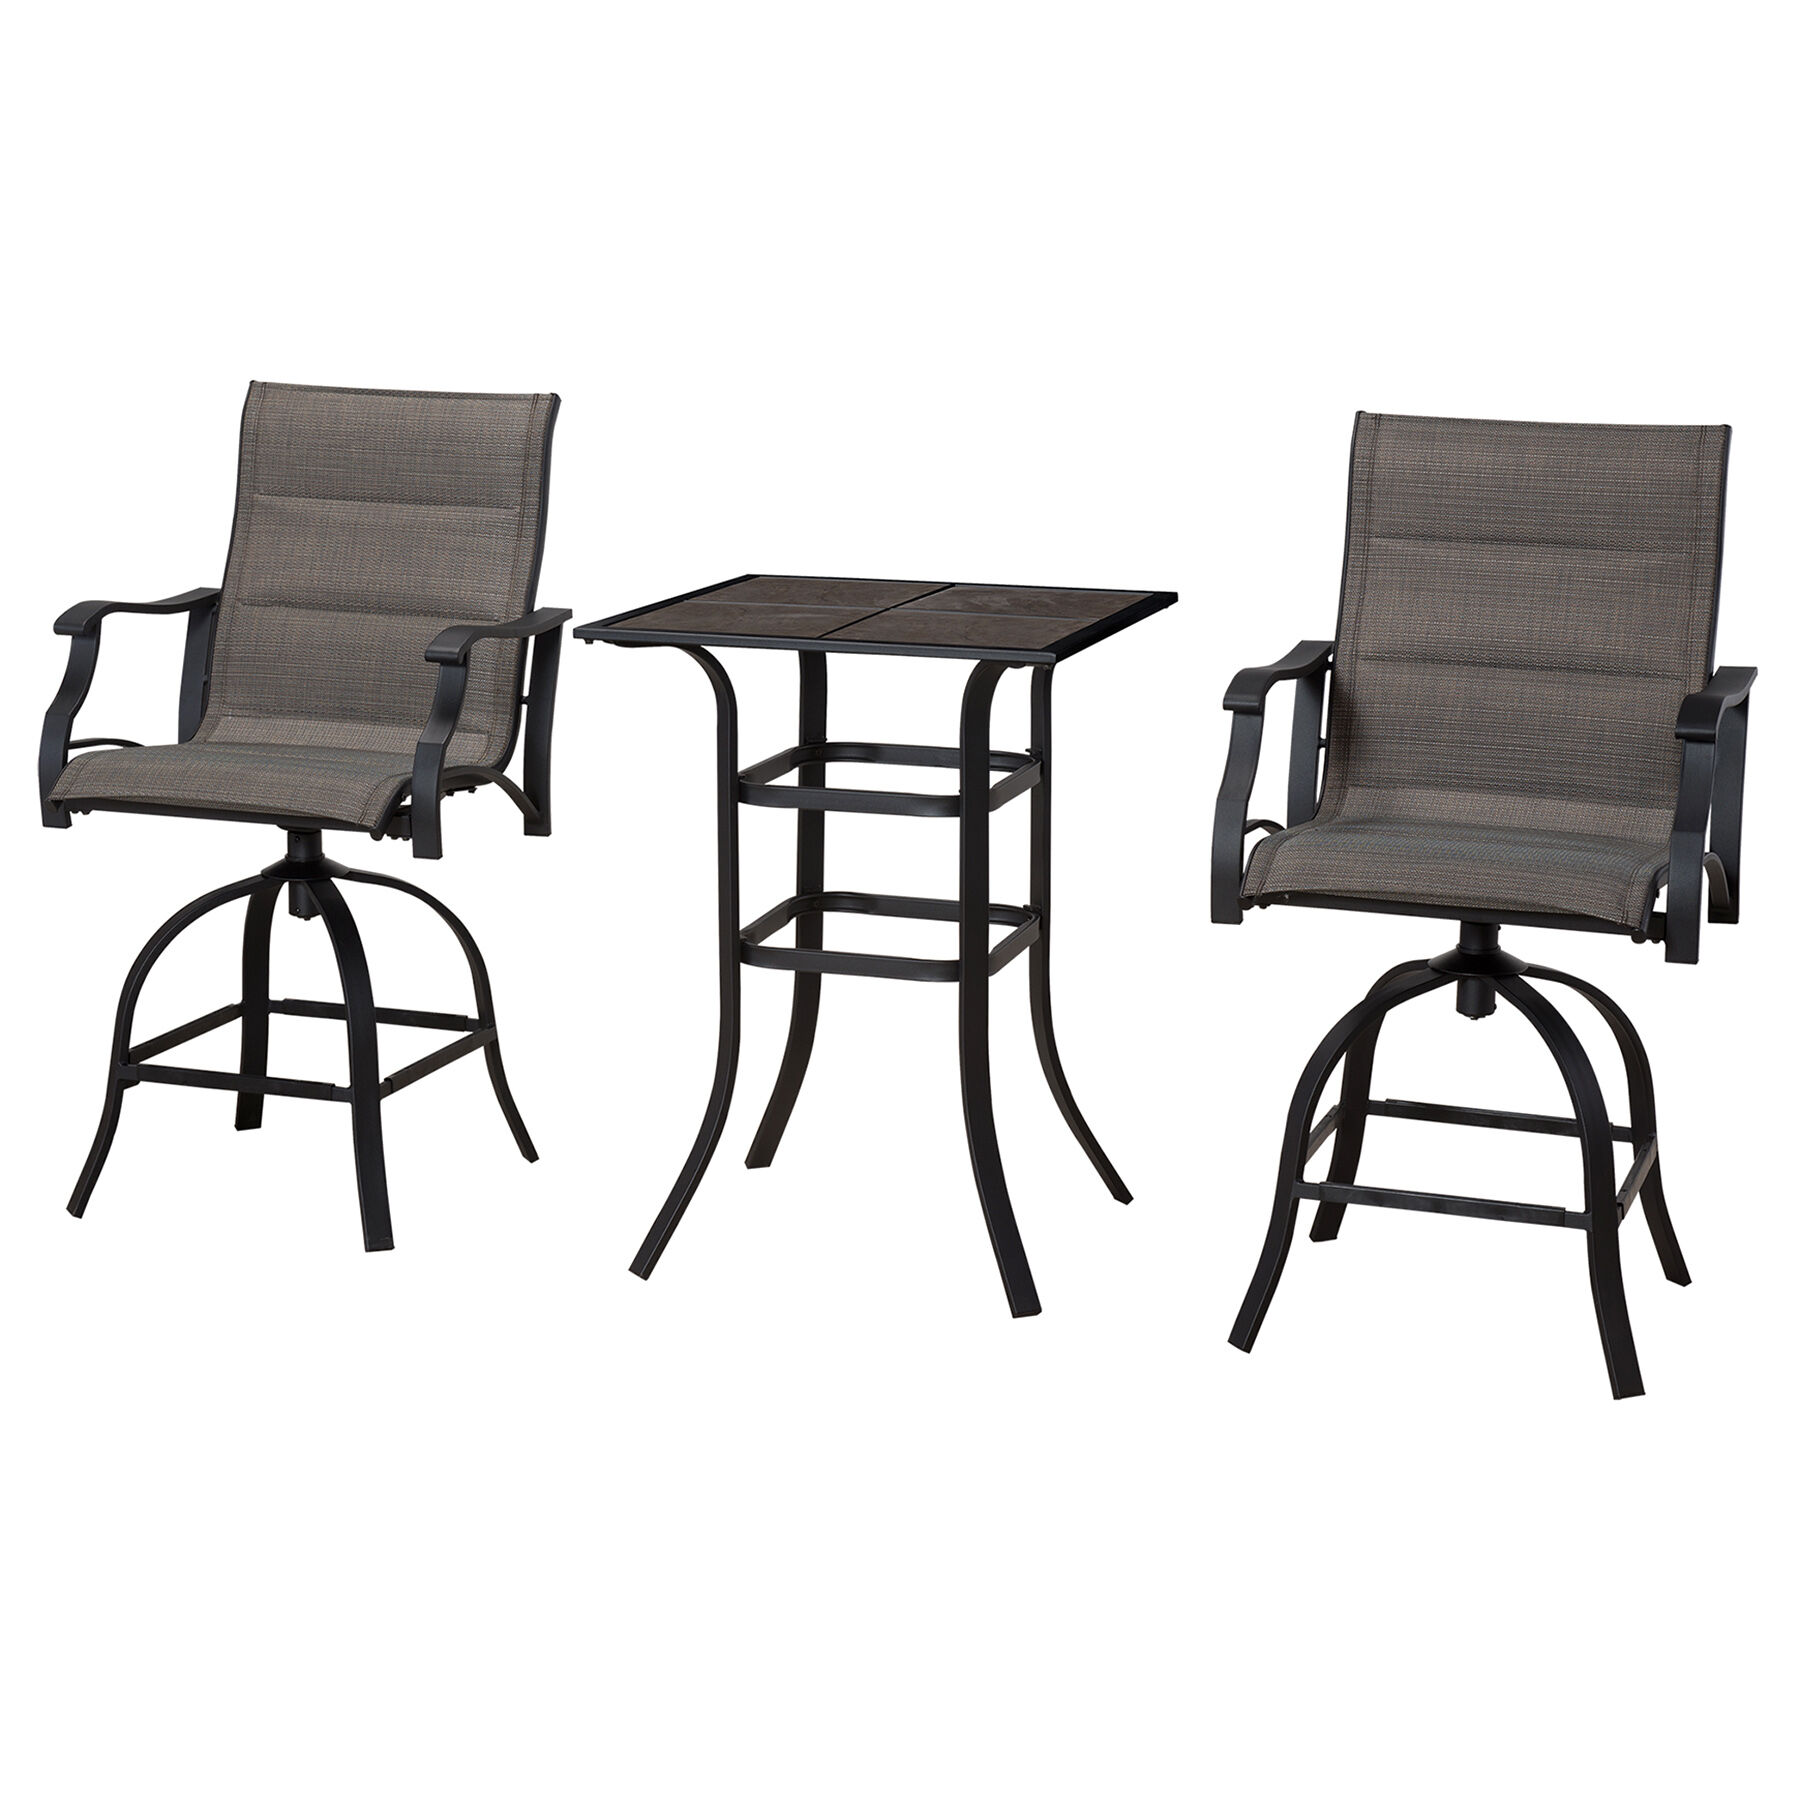 high top table chair set covers grand rapids malibu bistro 3 piece and at home